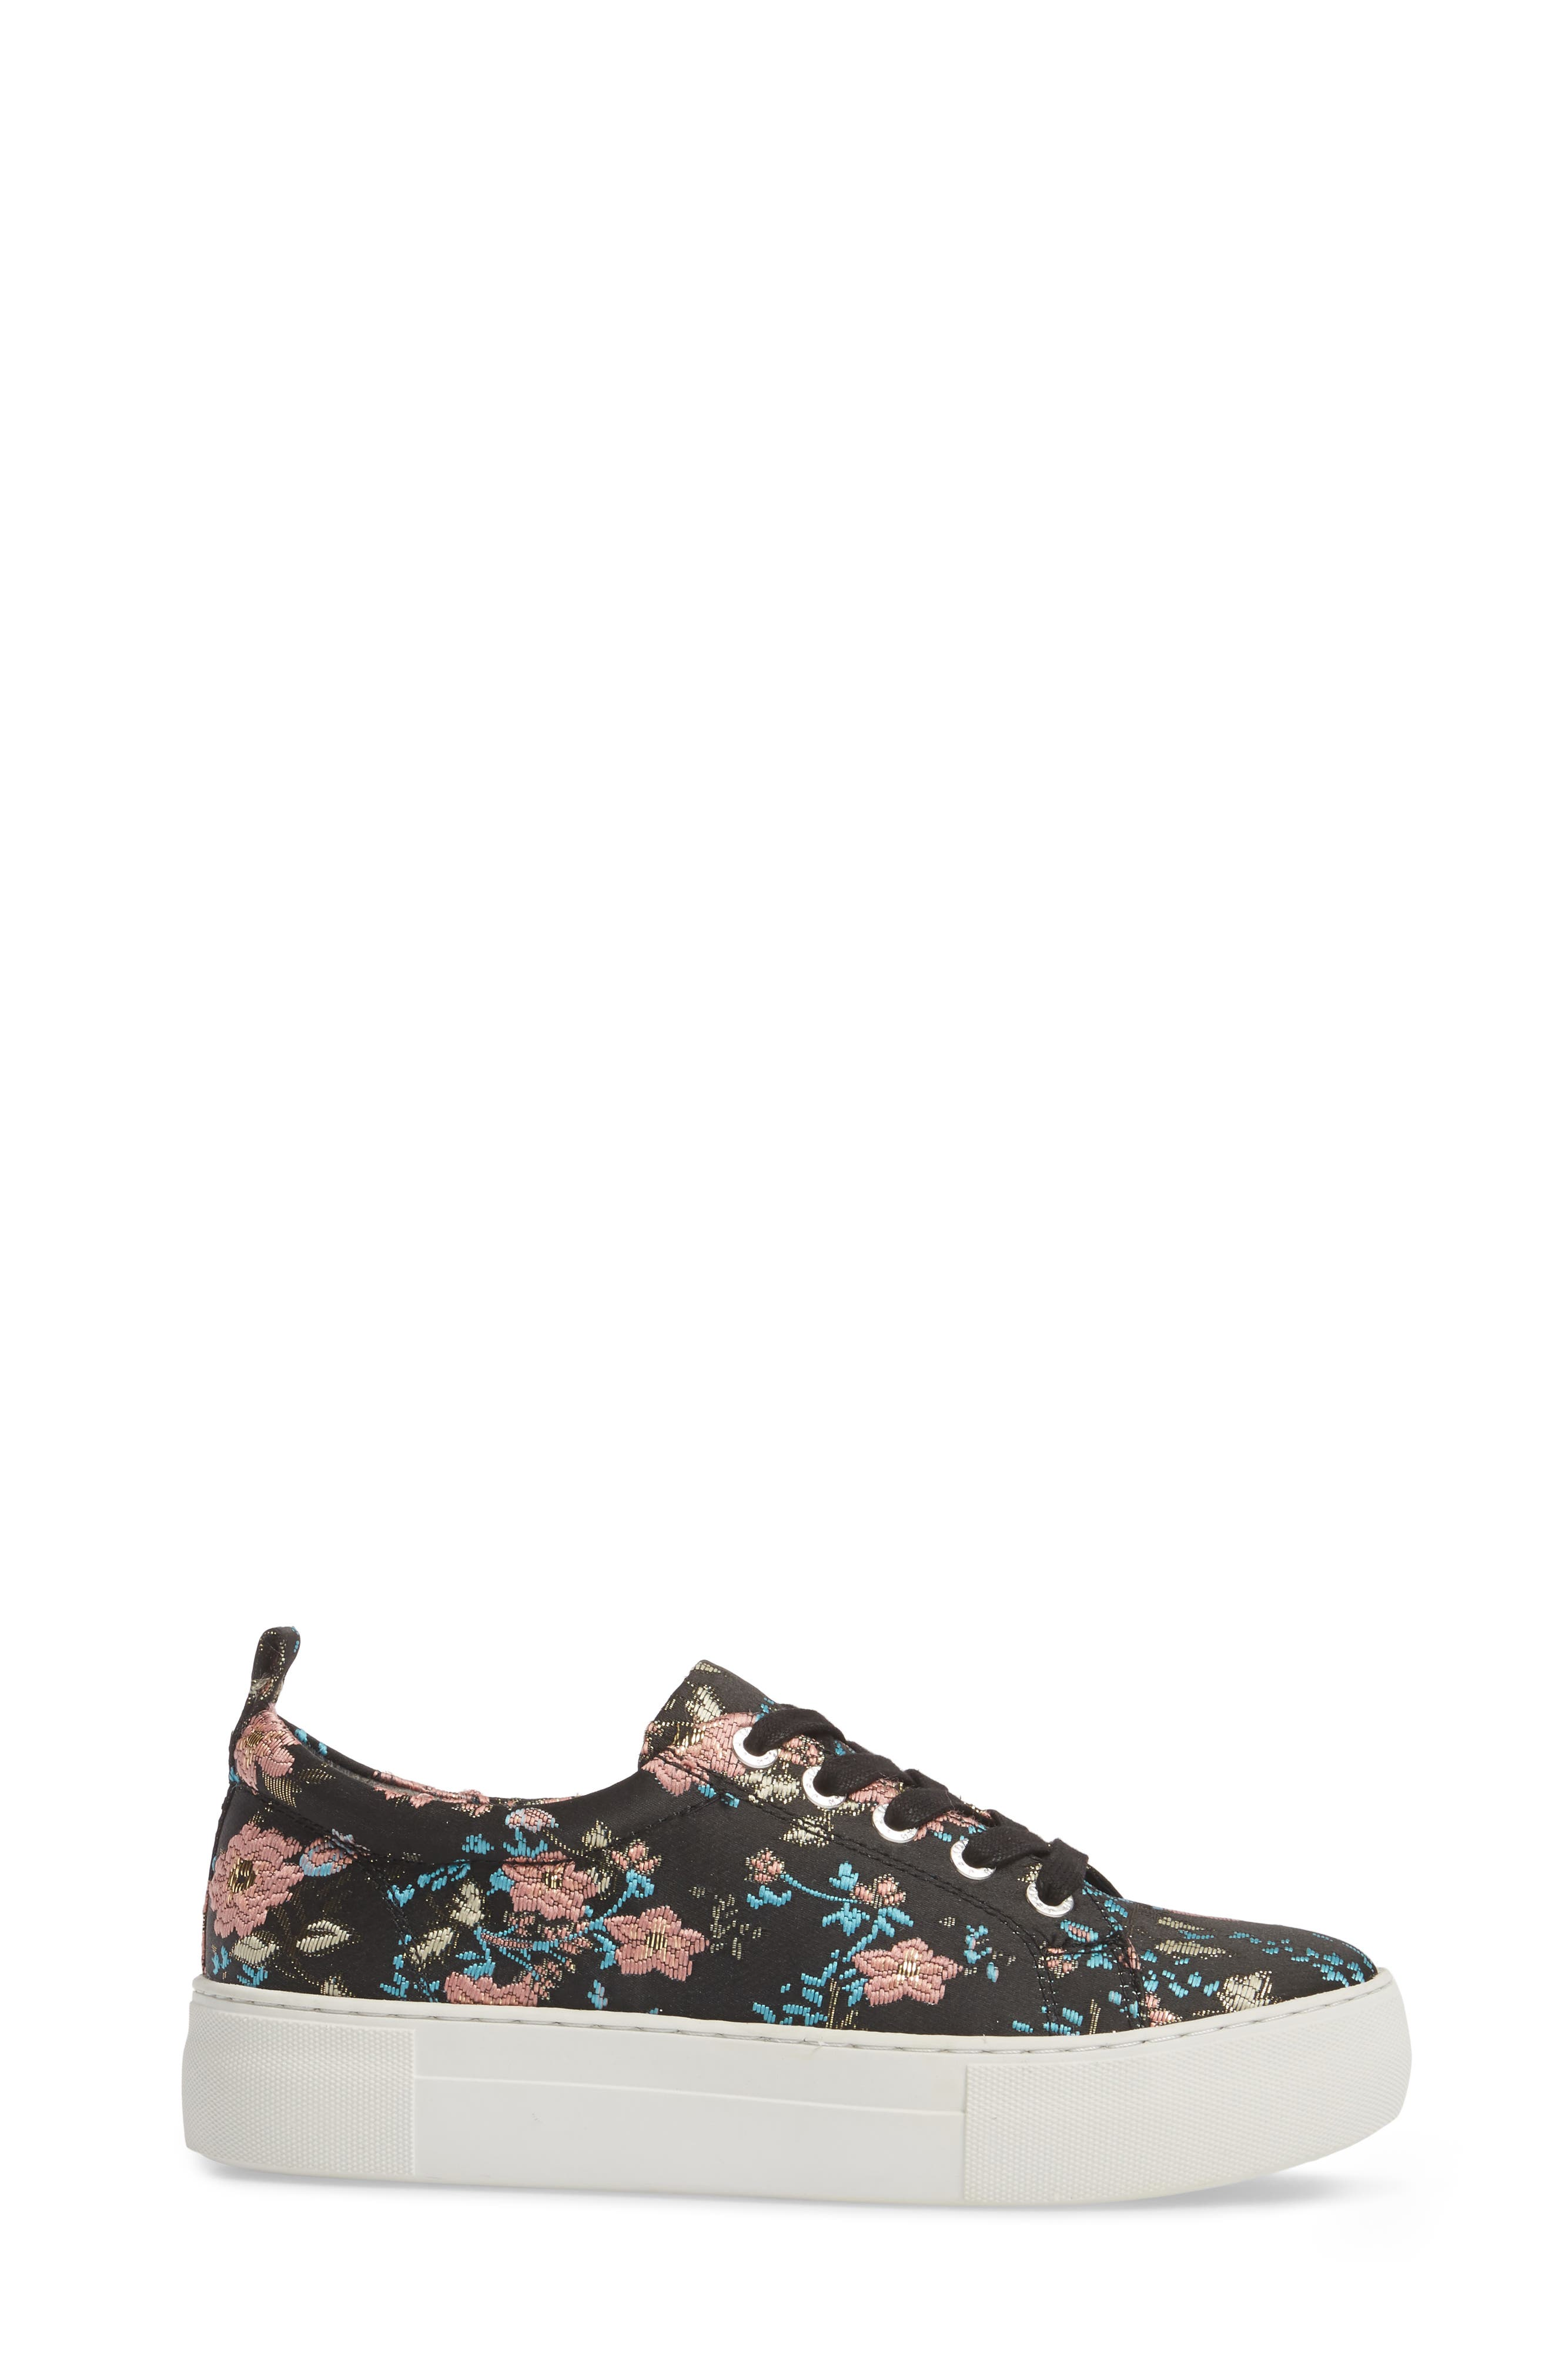 Assure Embroidered Platform Sneaker,                             Alternate thumbnail 3, color,                             016